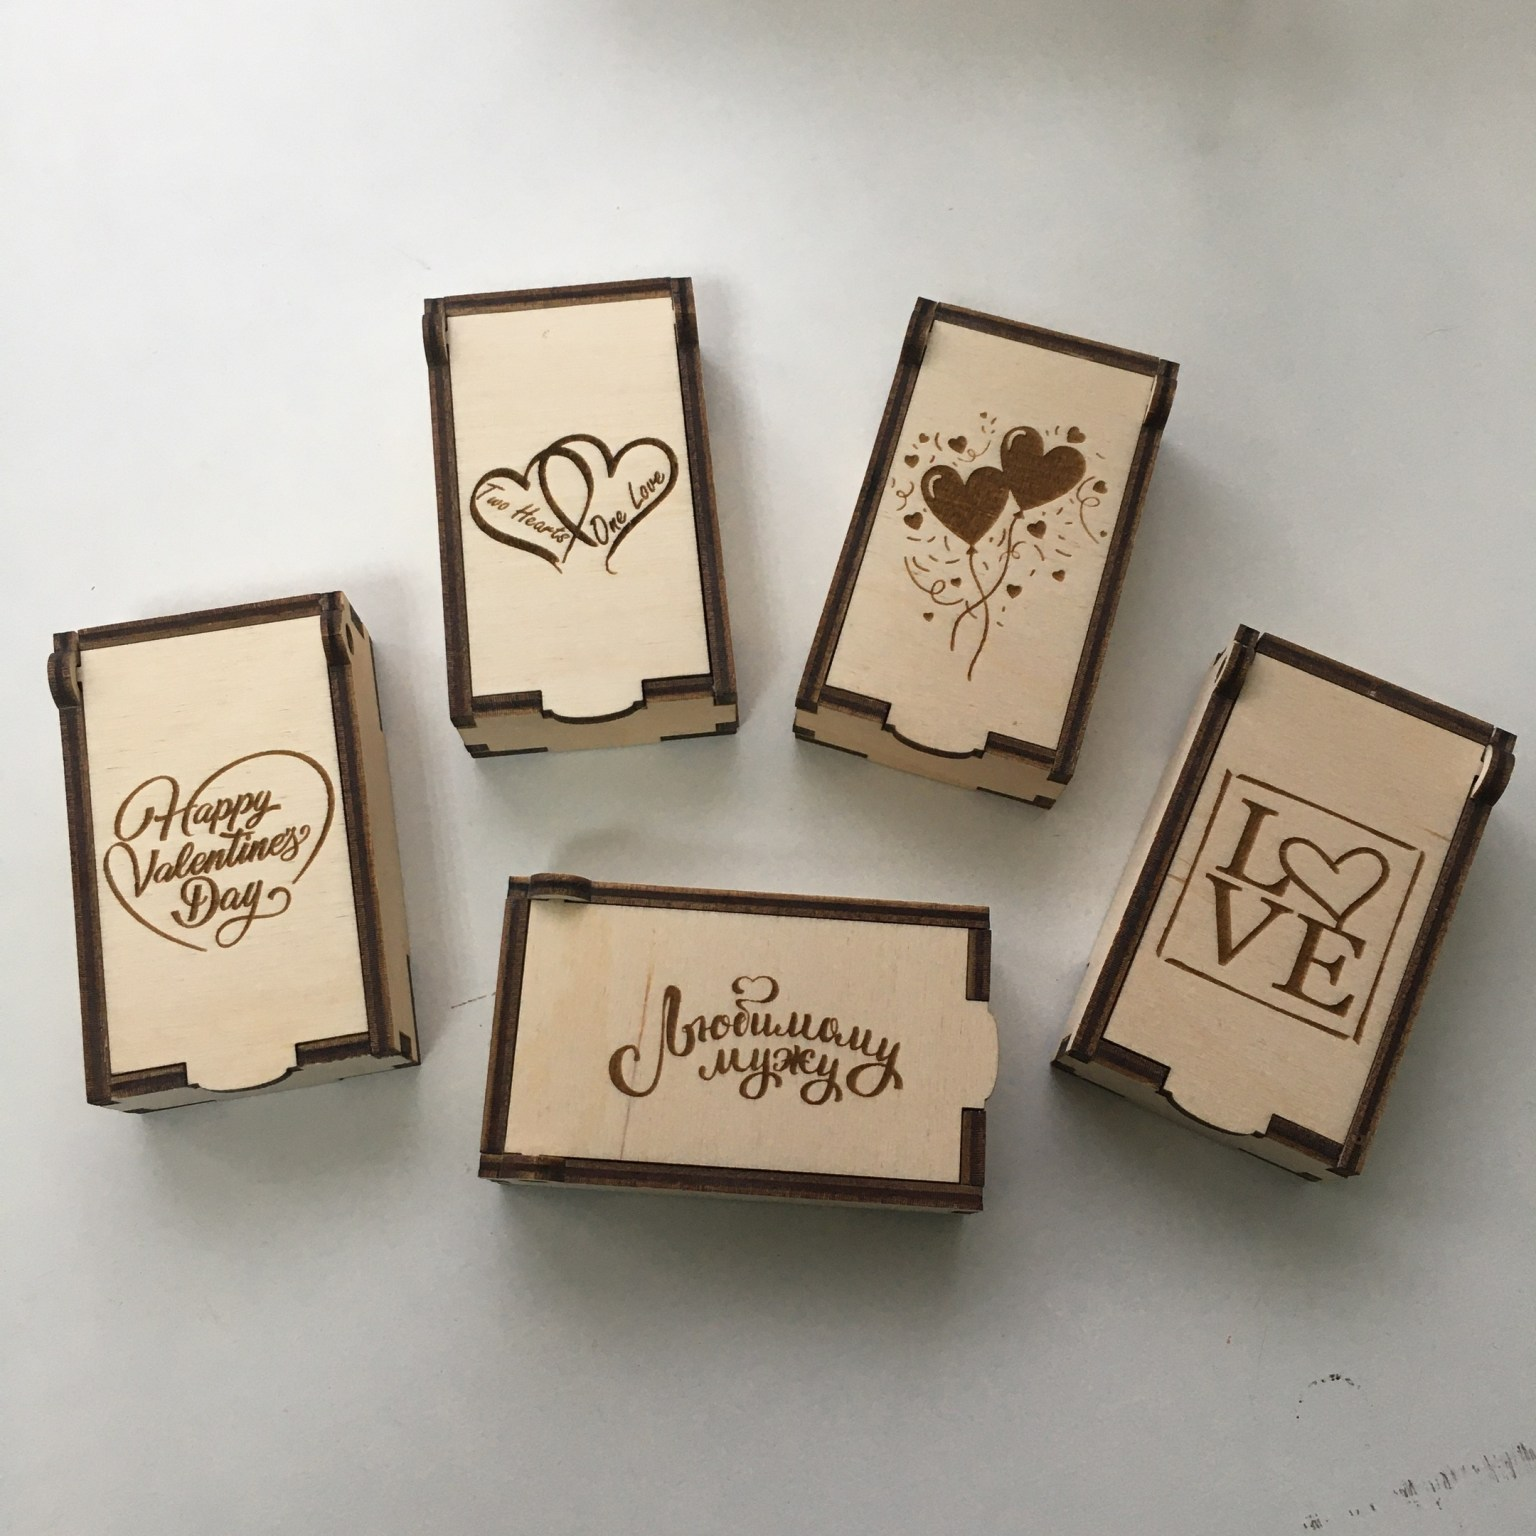 Laser Cut Small Boxes For February 14 Valentines Day For Small Gifts Such As Keychains Free CDR Vectors Art